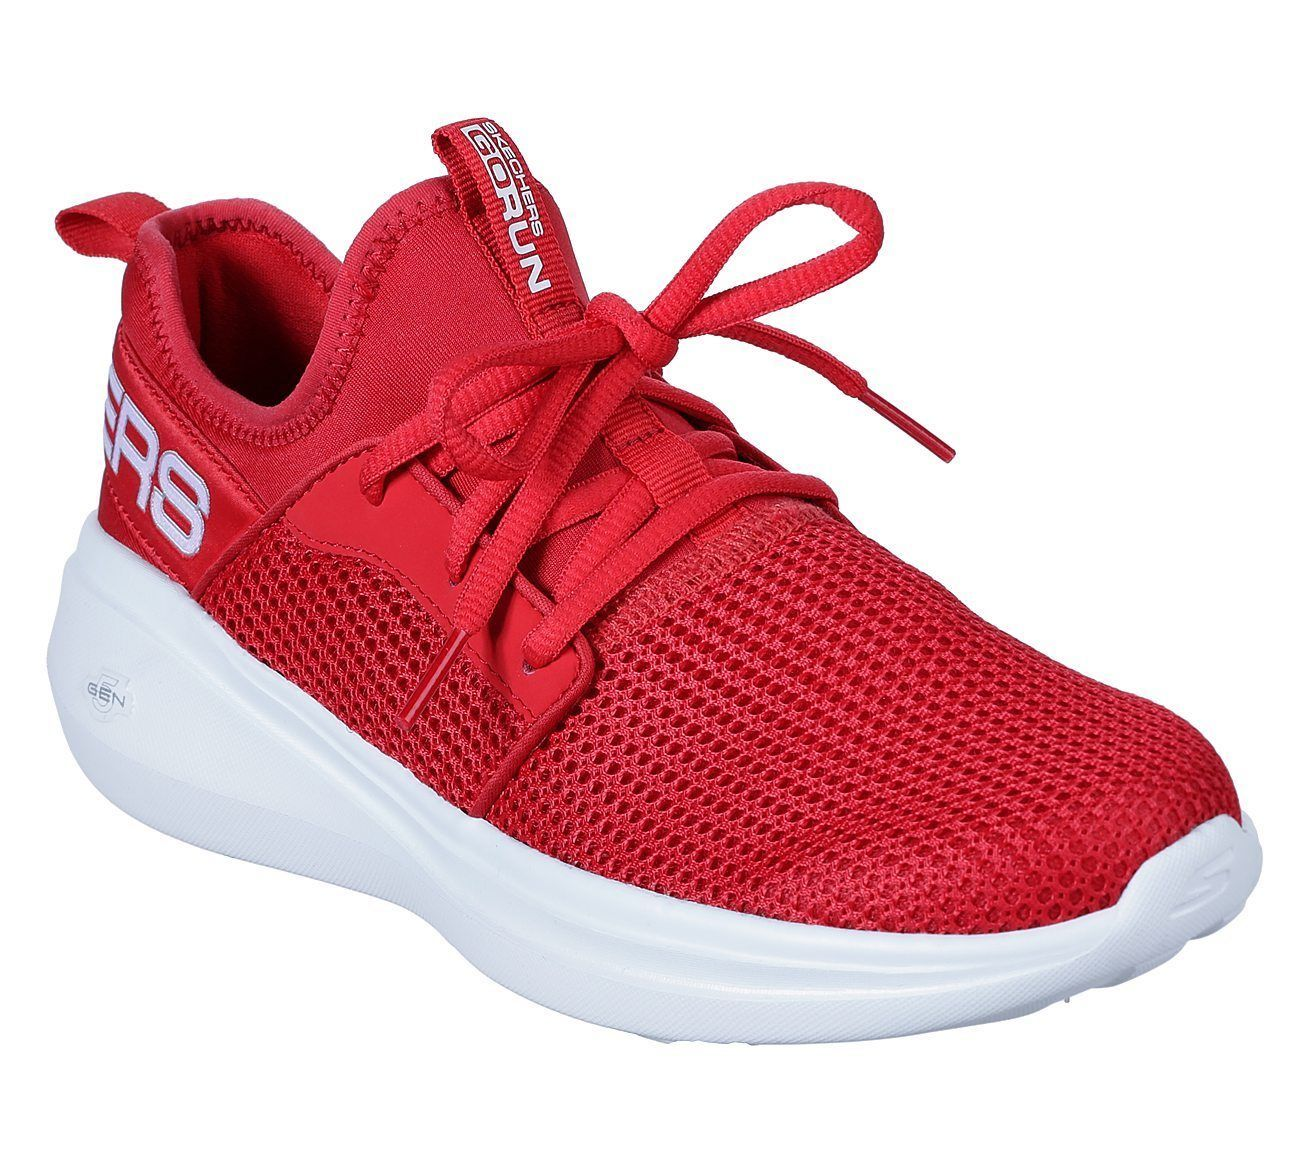 Primary image for Skechers Red GO Run Fast shoe Women Sport Workout mesh Comfort Casual Soft 15103